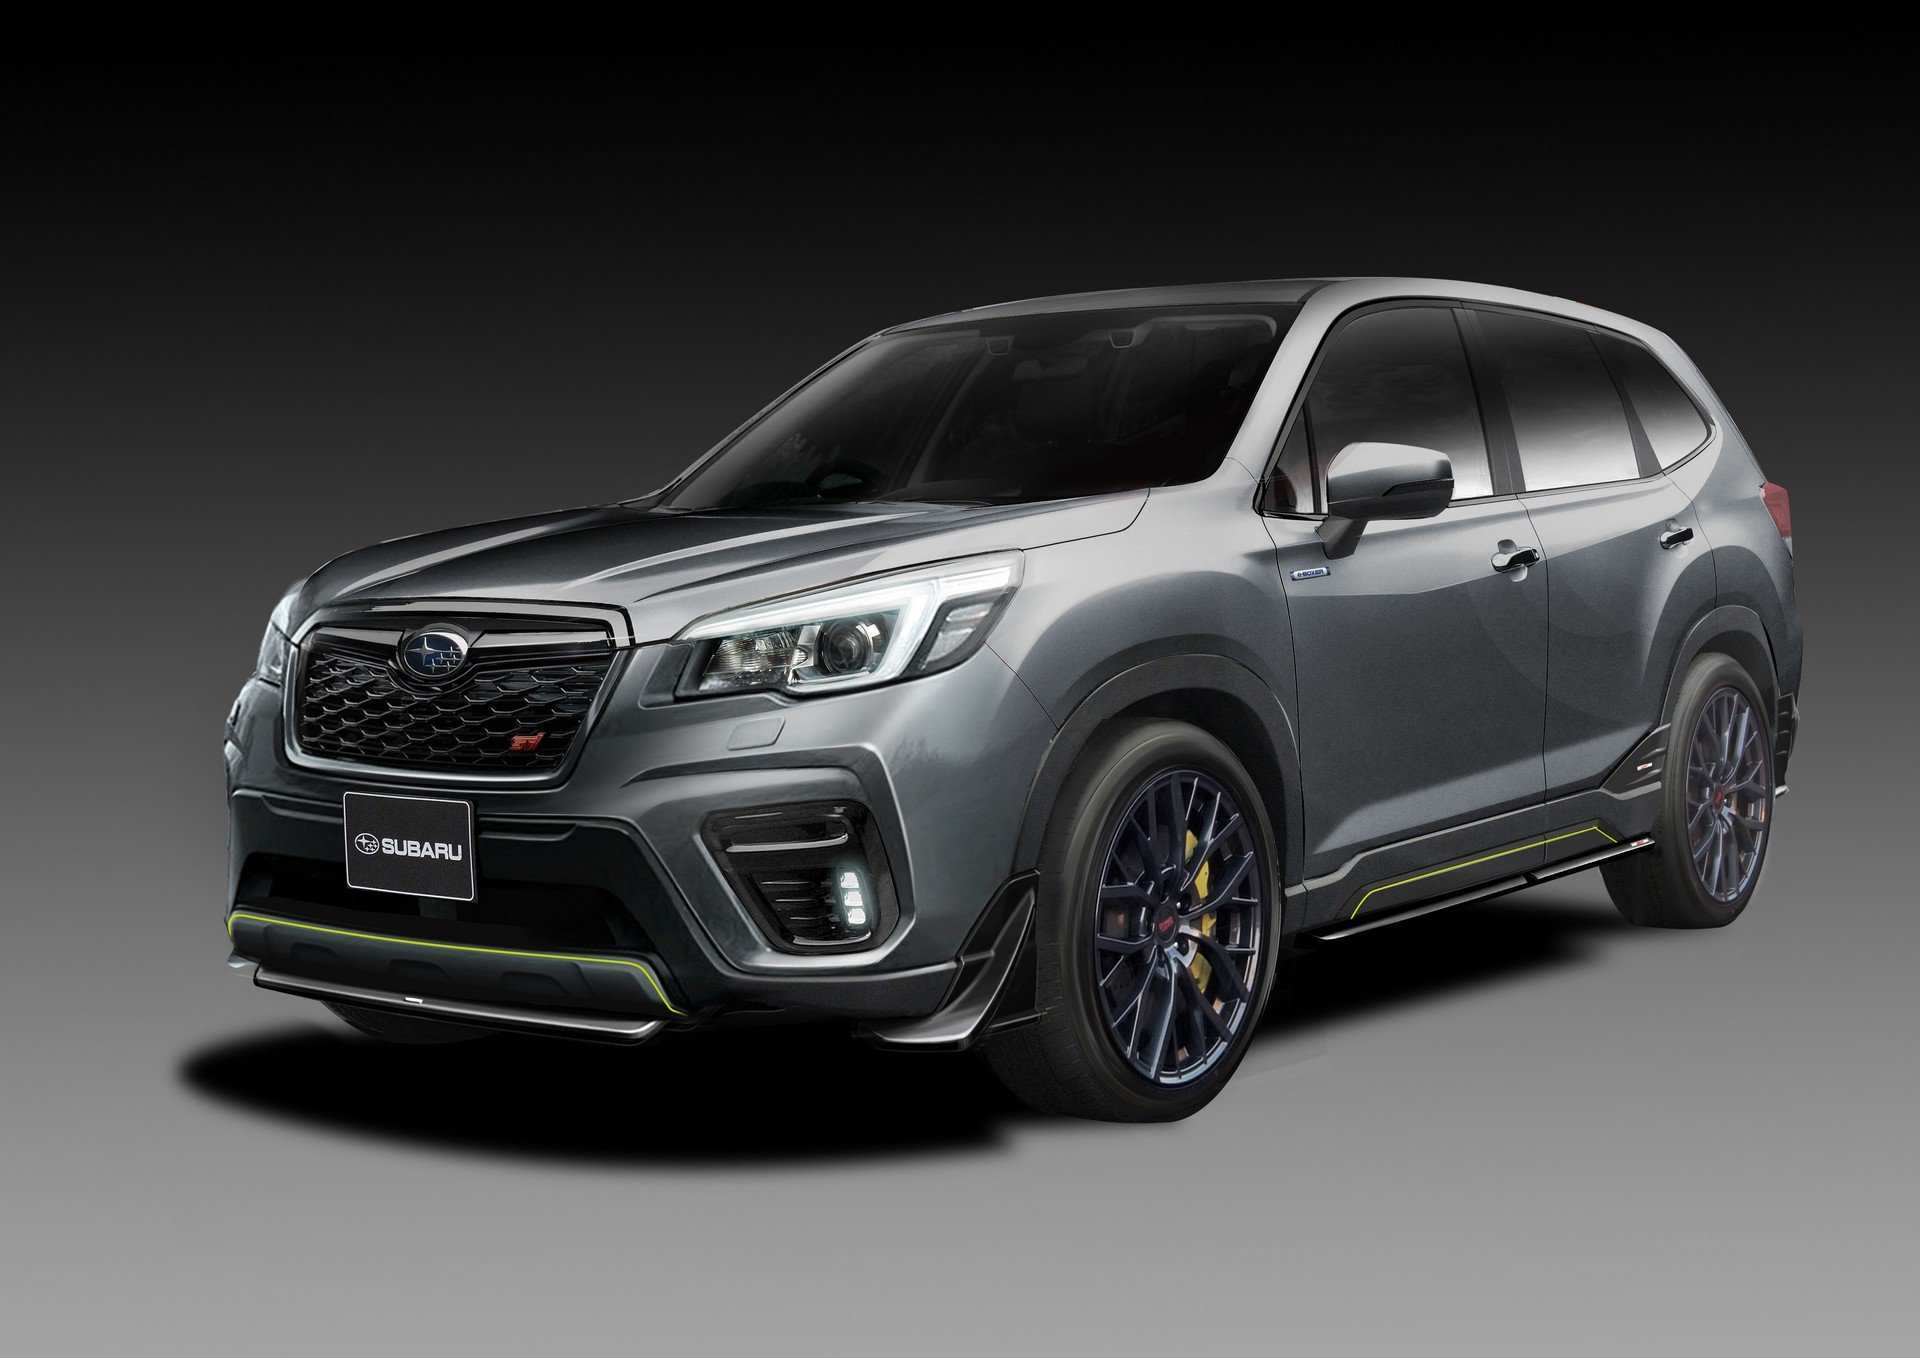 50 The Subaru Forester 2020 Concept Research New